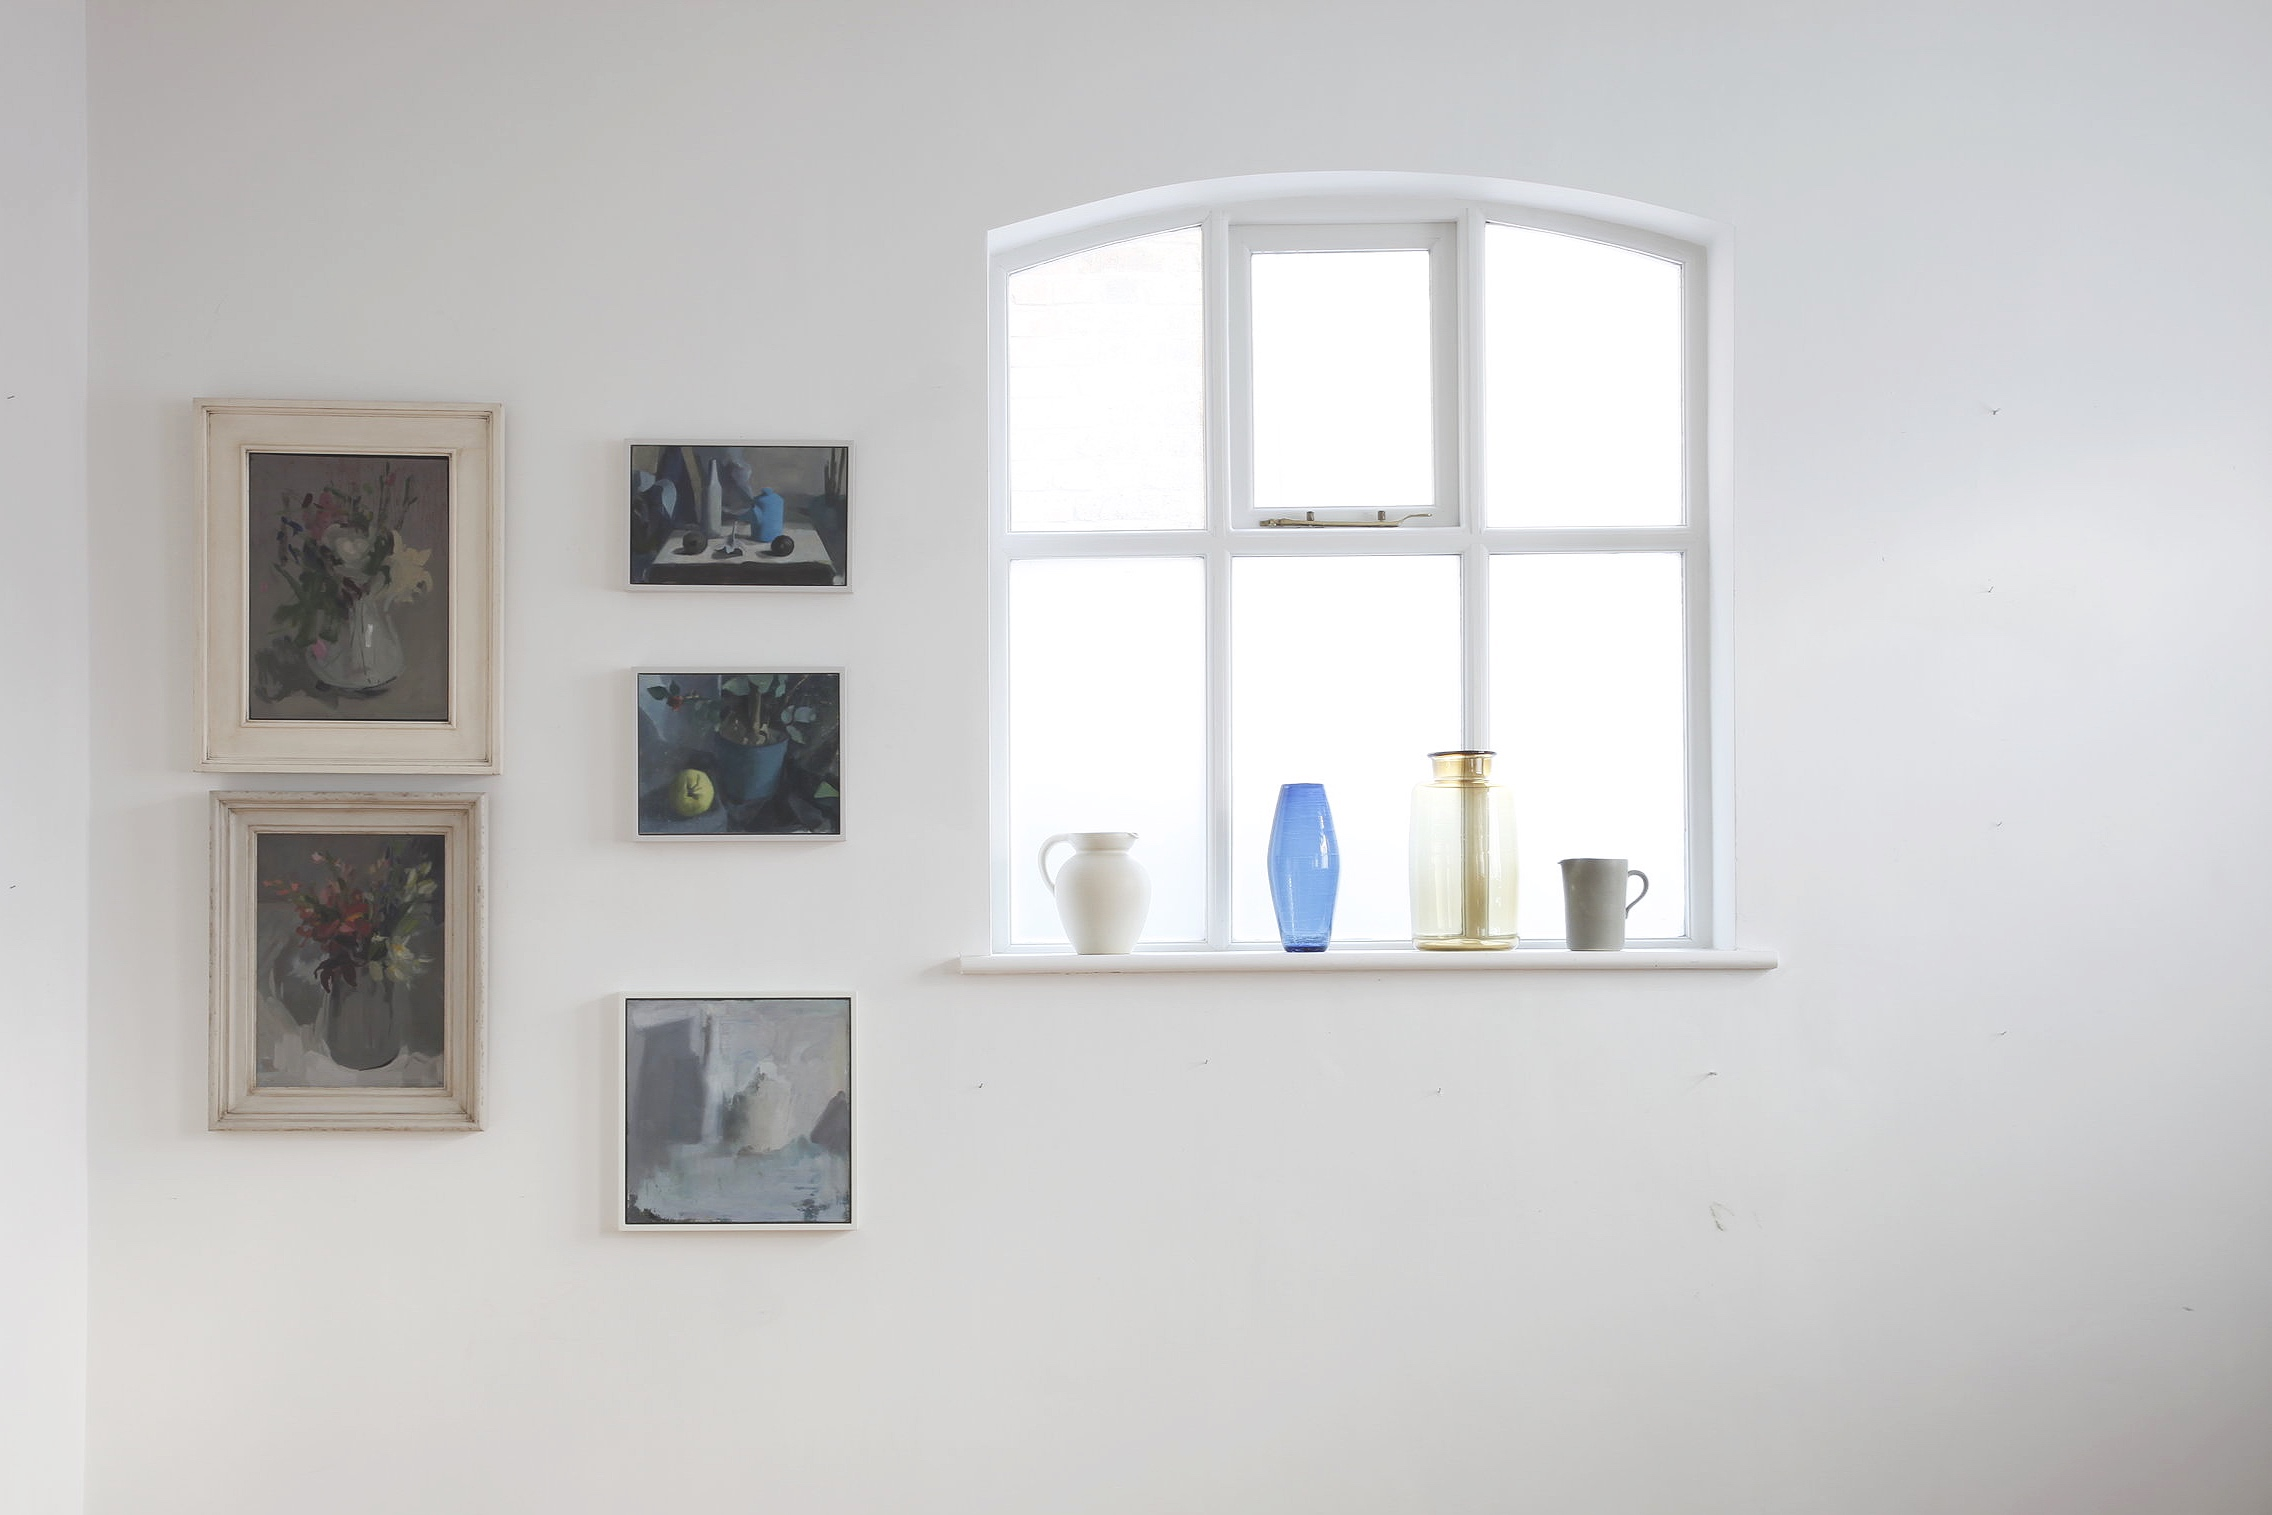 Paintings by Serena Rowe and Clare Haward. Glassware by Michael Ruh studio. Image from 155a Winter Art Fair 2018.